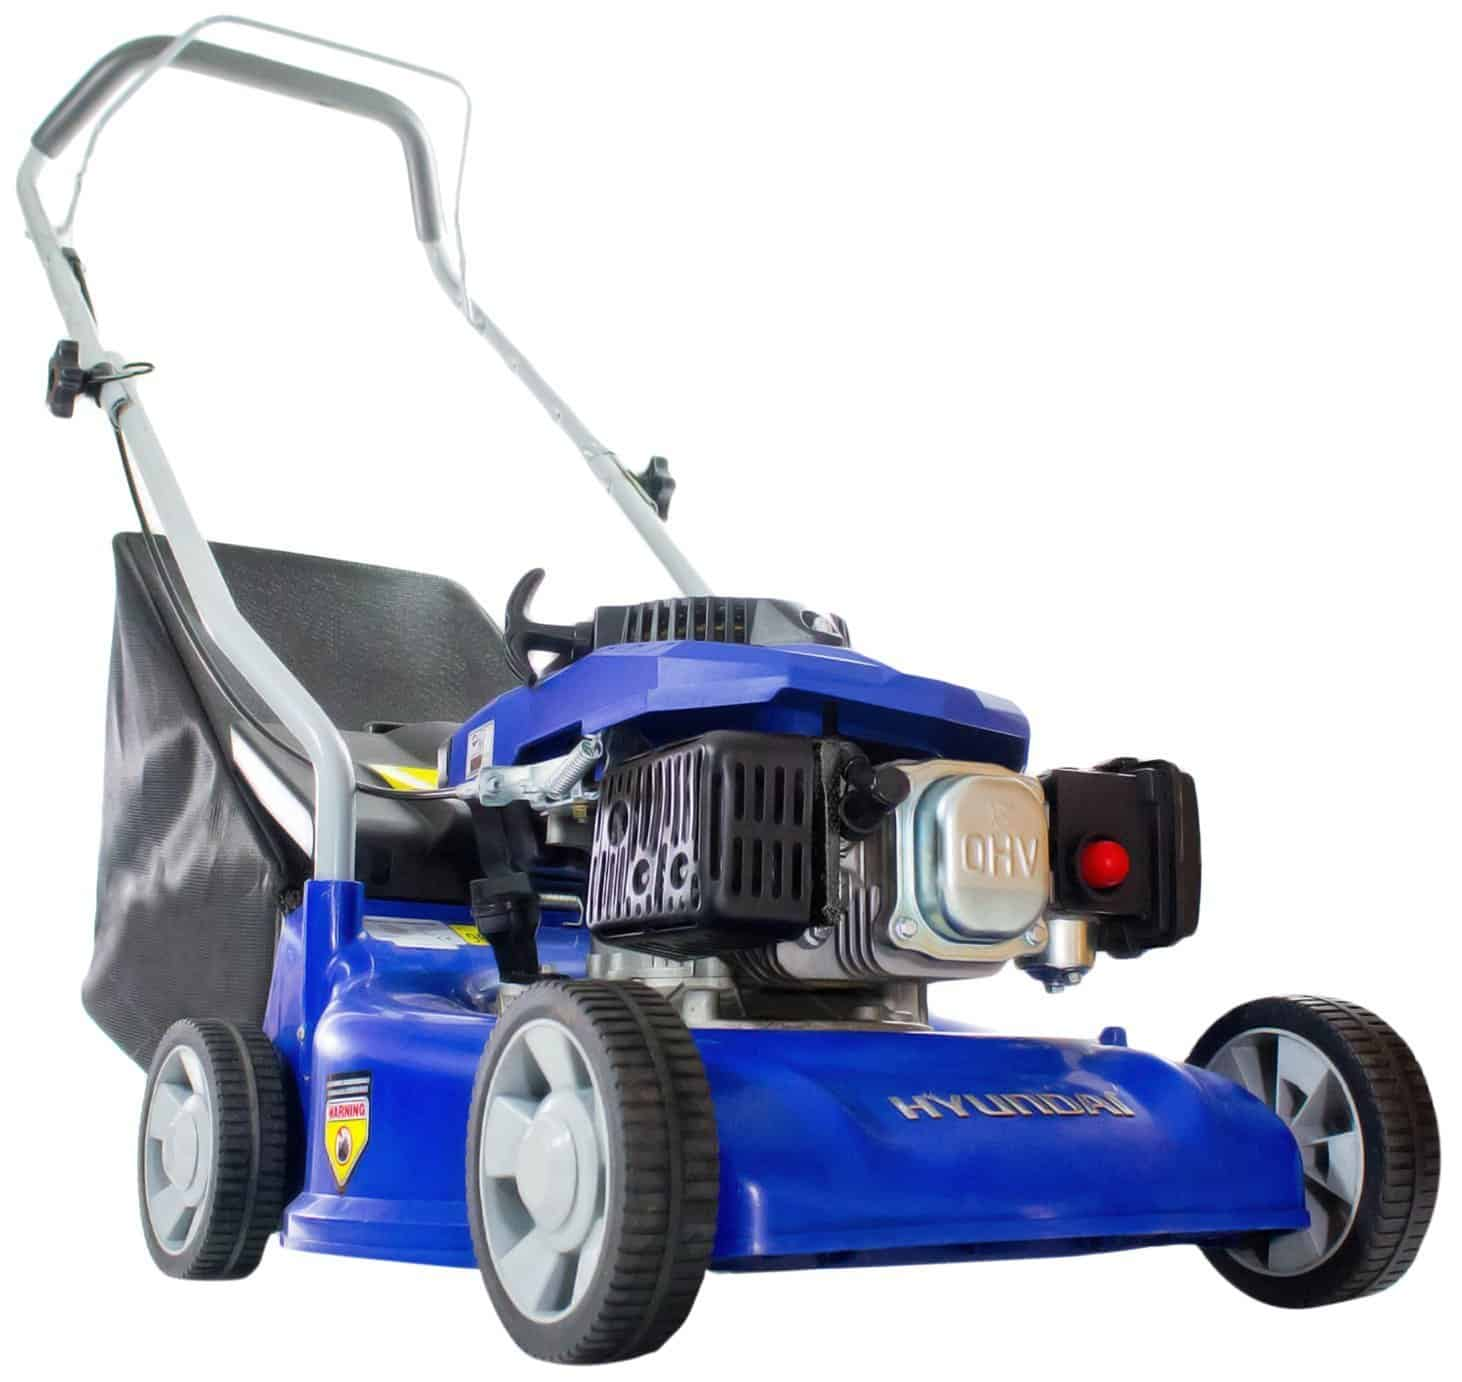 Hyundai HYM40P Lawnmower